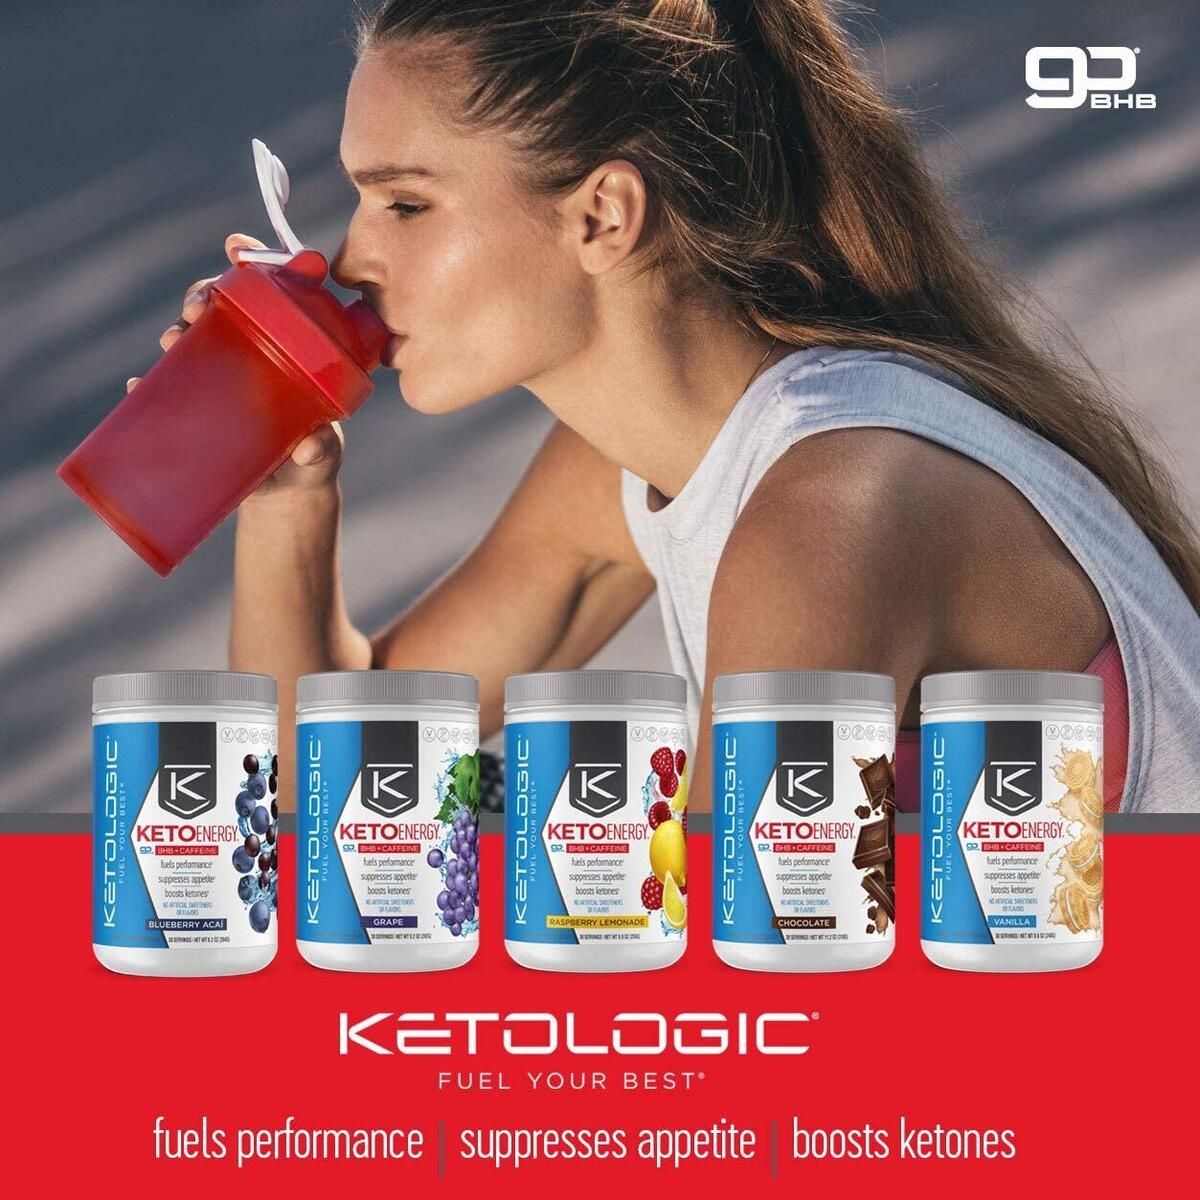 KetoLogic BHB Exogenous Ketones Powder with Caffeine (30 Servings) - Keto Pre-Workout, Boosts Ketosis, Energy & Focus - Support Keto Diet with Beta-Hydroxybutyrate Keto BHB Salts - Grape